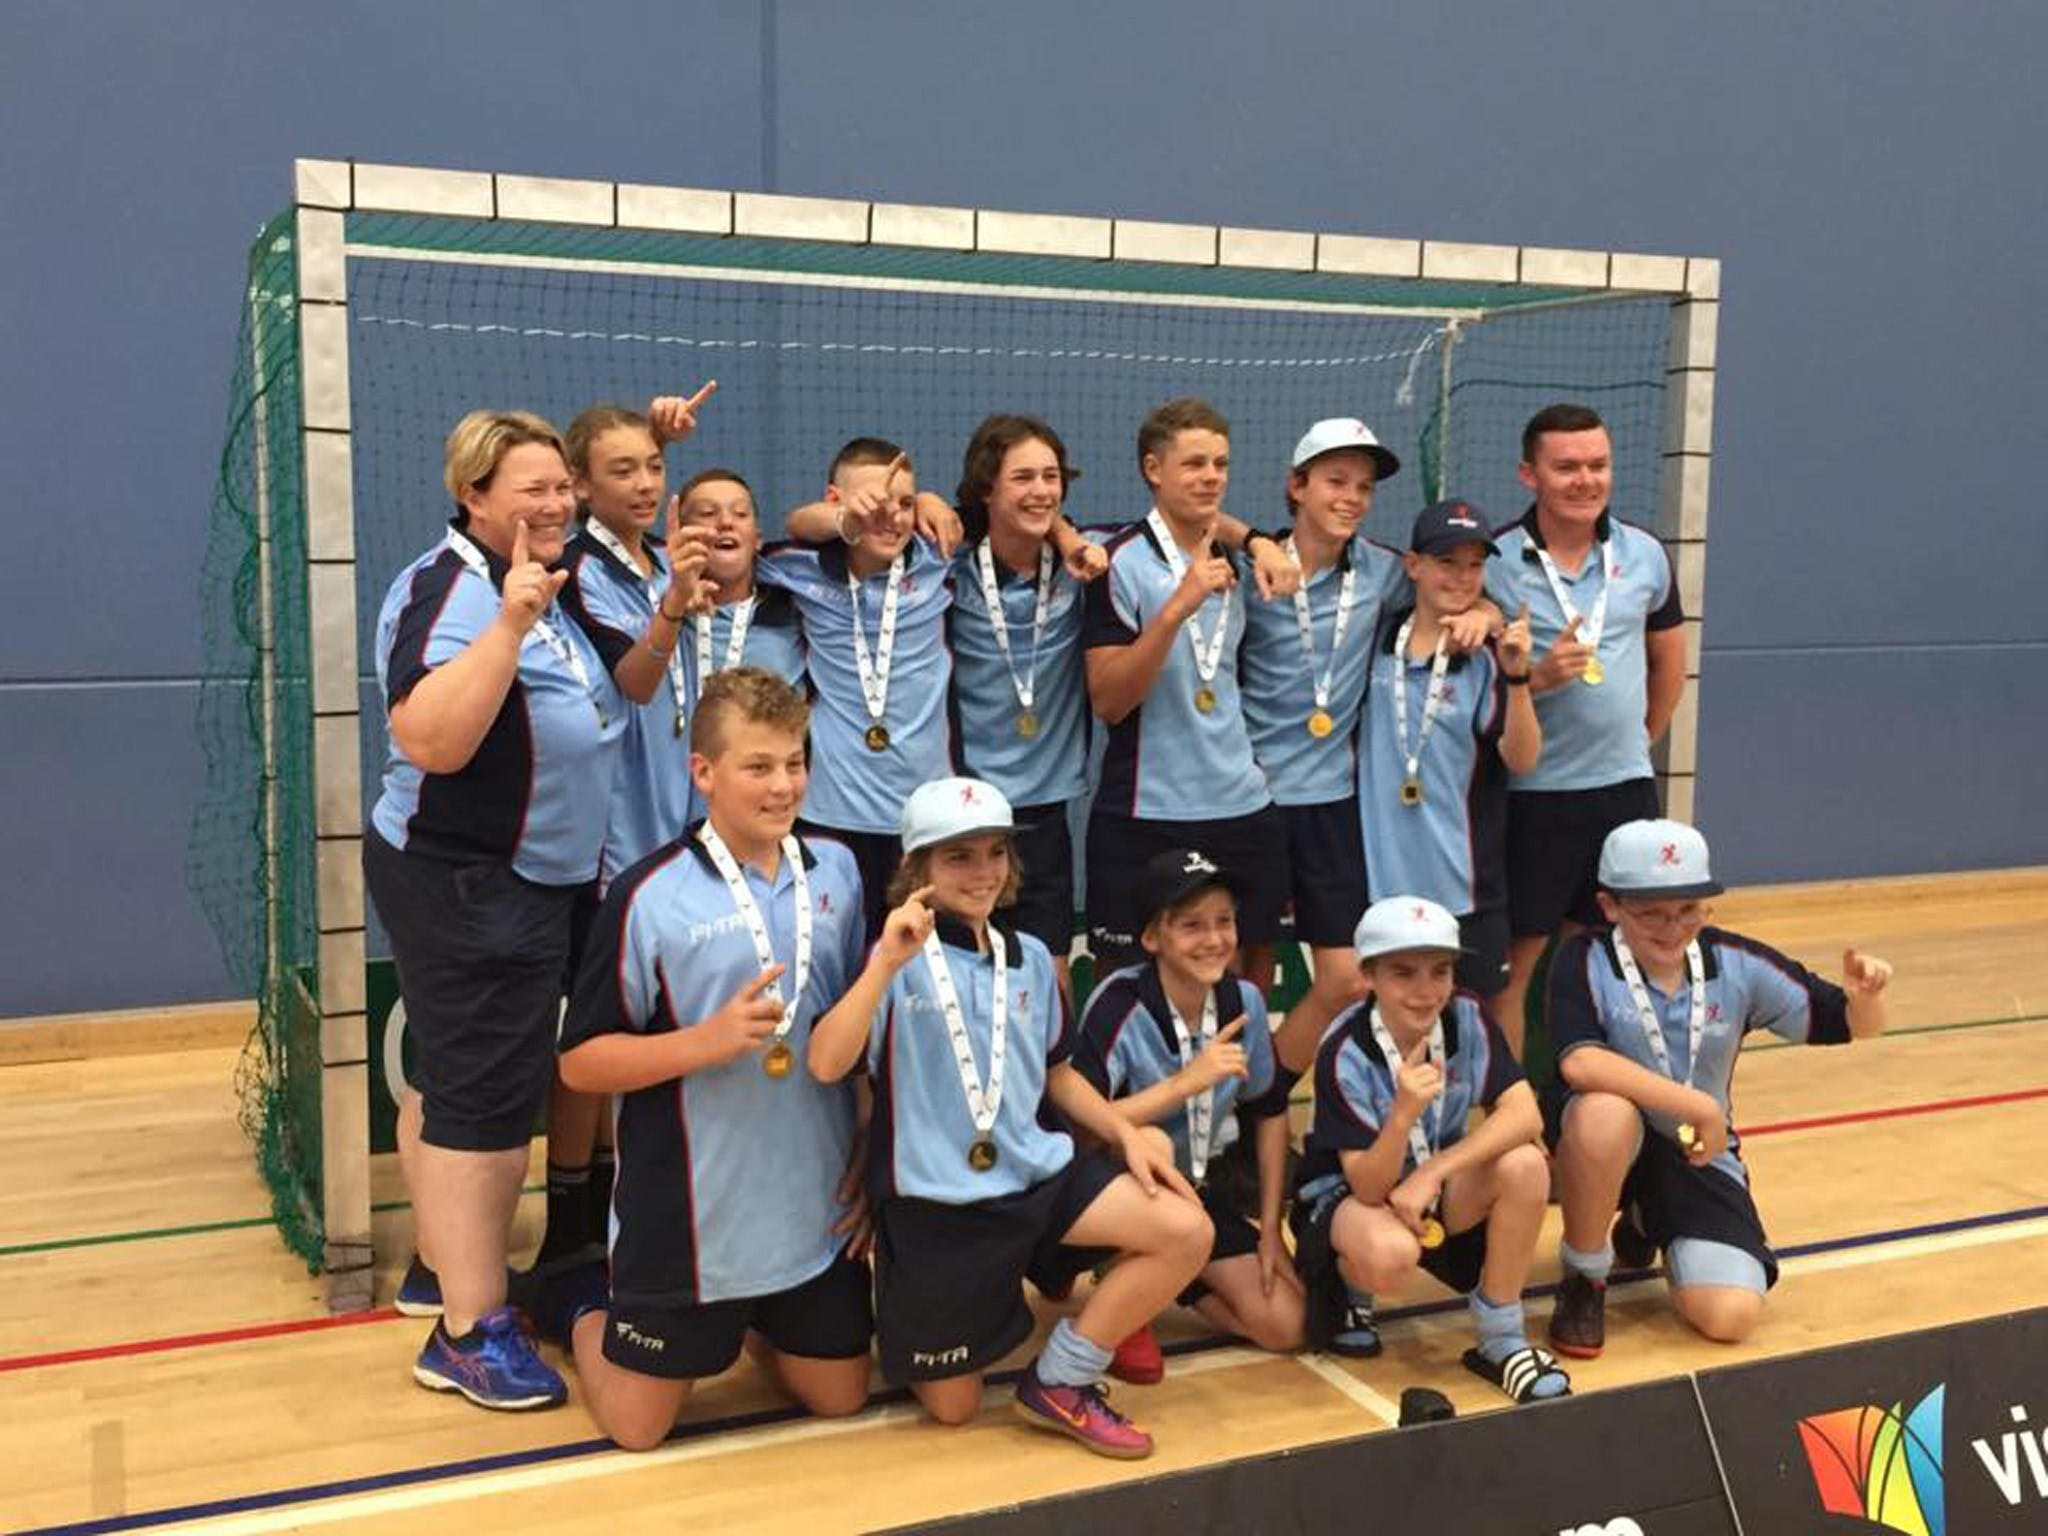 Hockey NSW Indoor State Championship  Under 18 Boys - Lightning Ridge Tourism